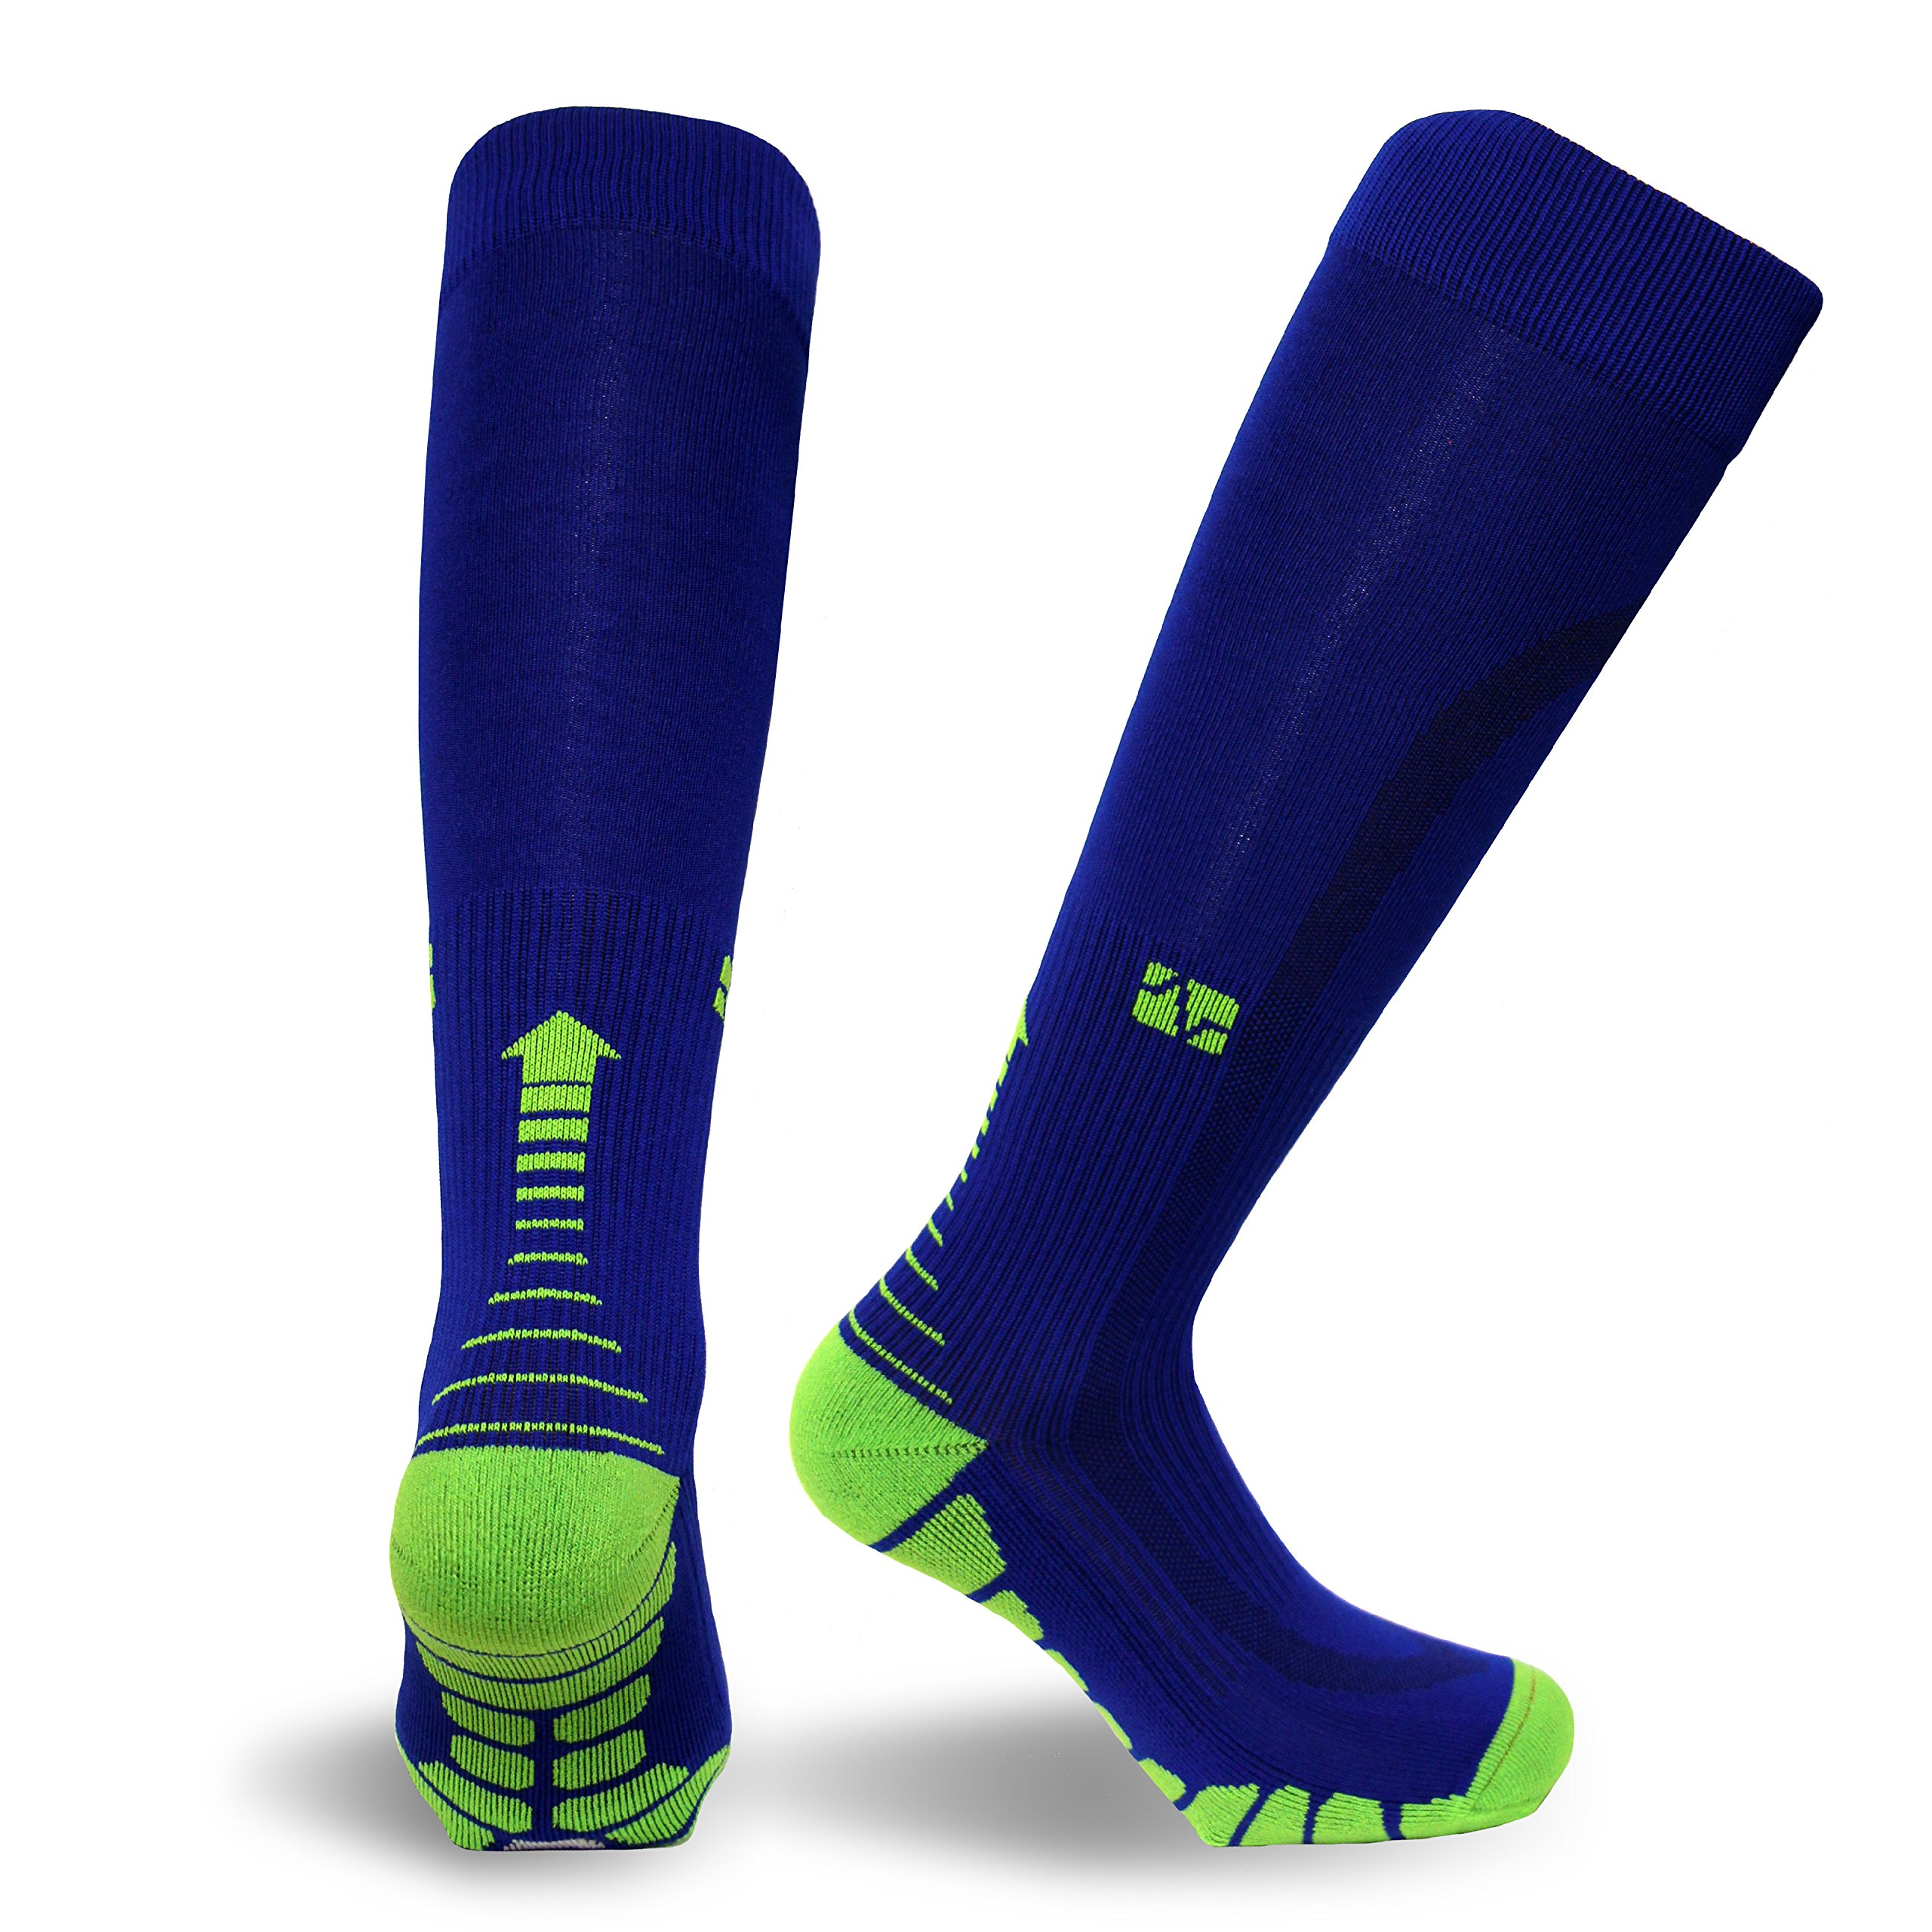 Vitalsox Italy -Patented Graduated Compression VT1211 Running, Training, Race, and Recovery Socks with Odor Resistant Silver DryStat (1-Pair Fitted), Royal/Green, Large VT1211 by Vitalsox